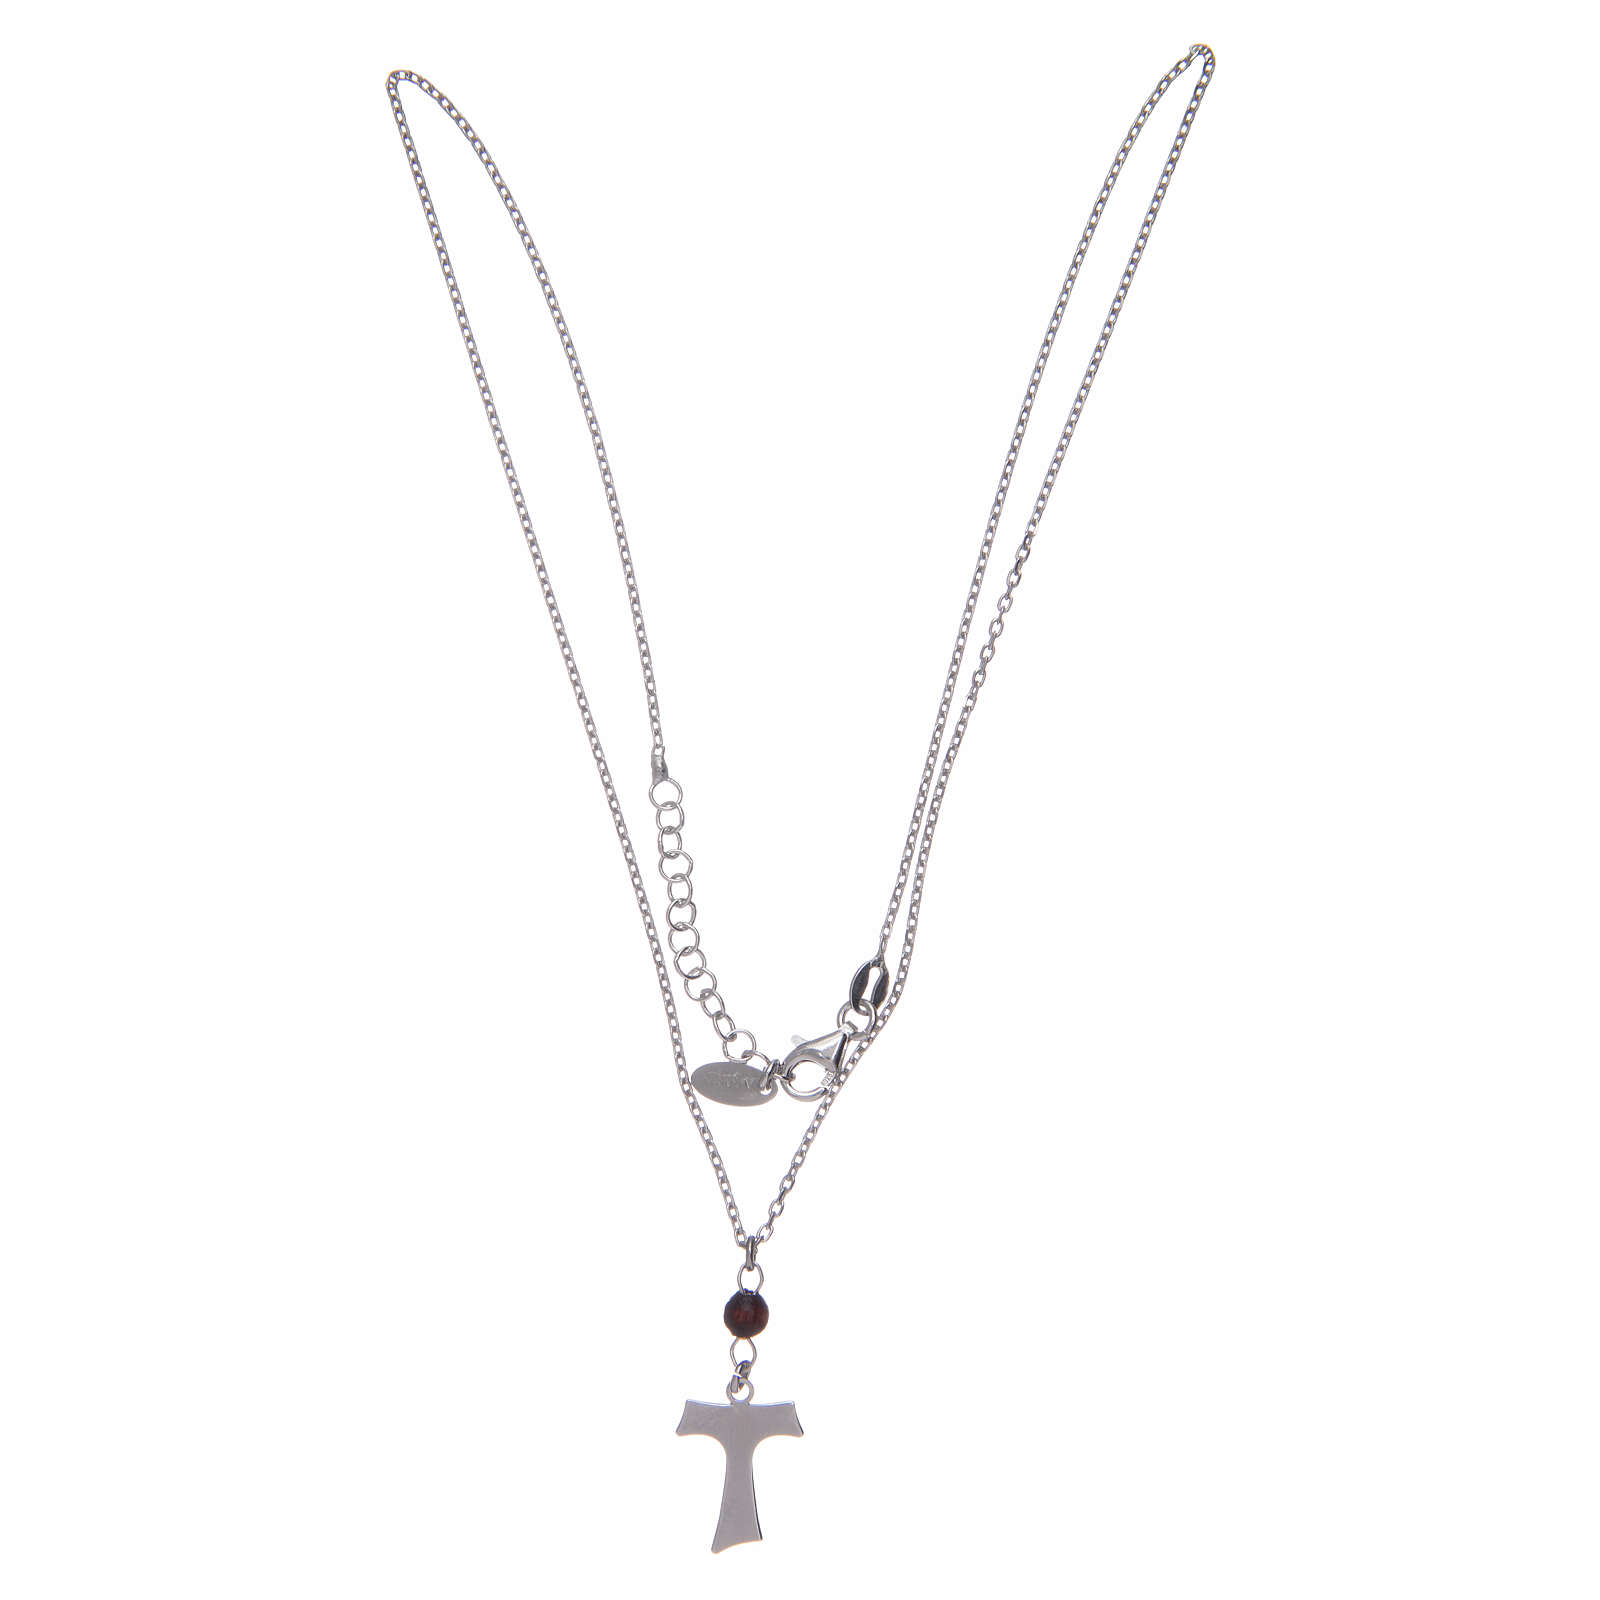 Amen necklace in silver and wood with Tau pendant 4